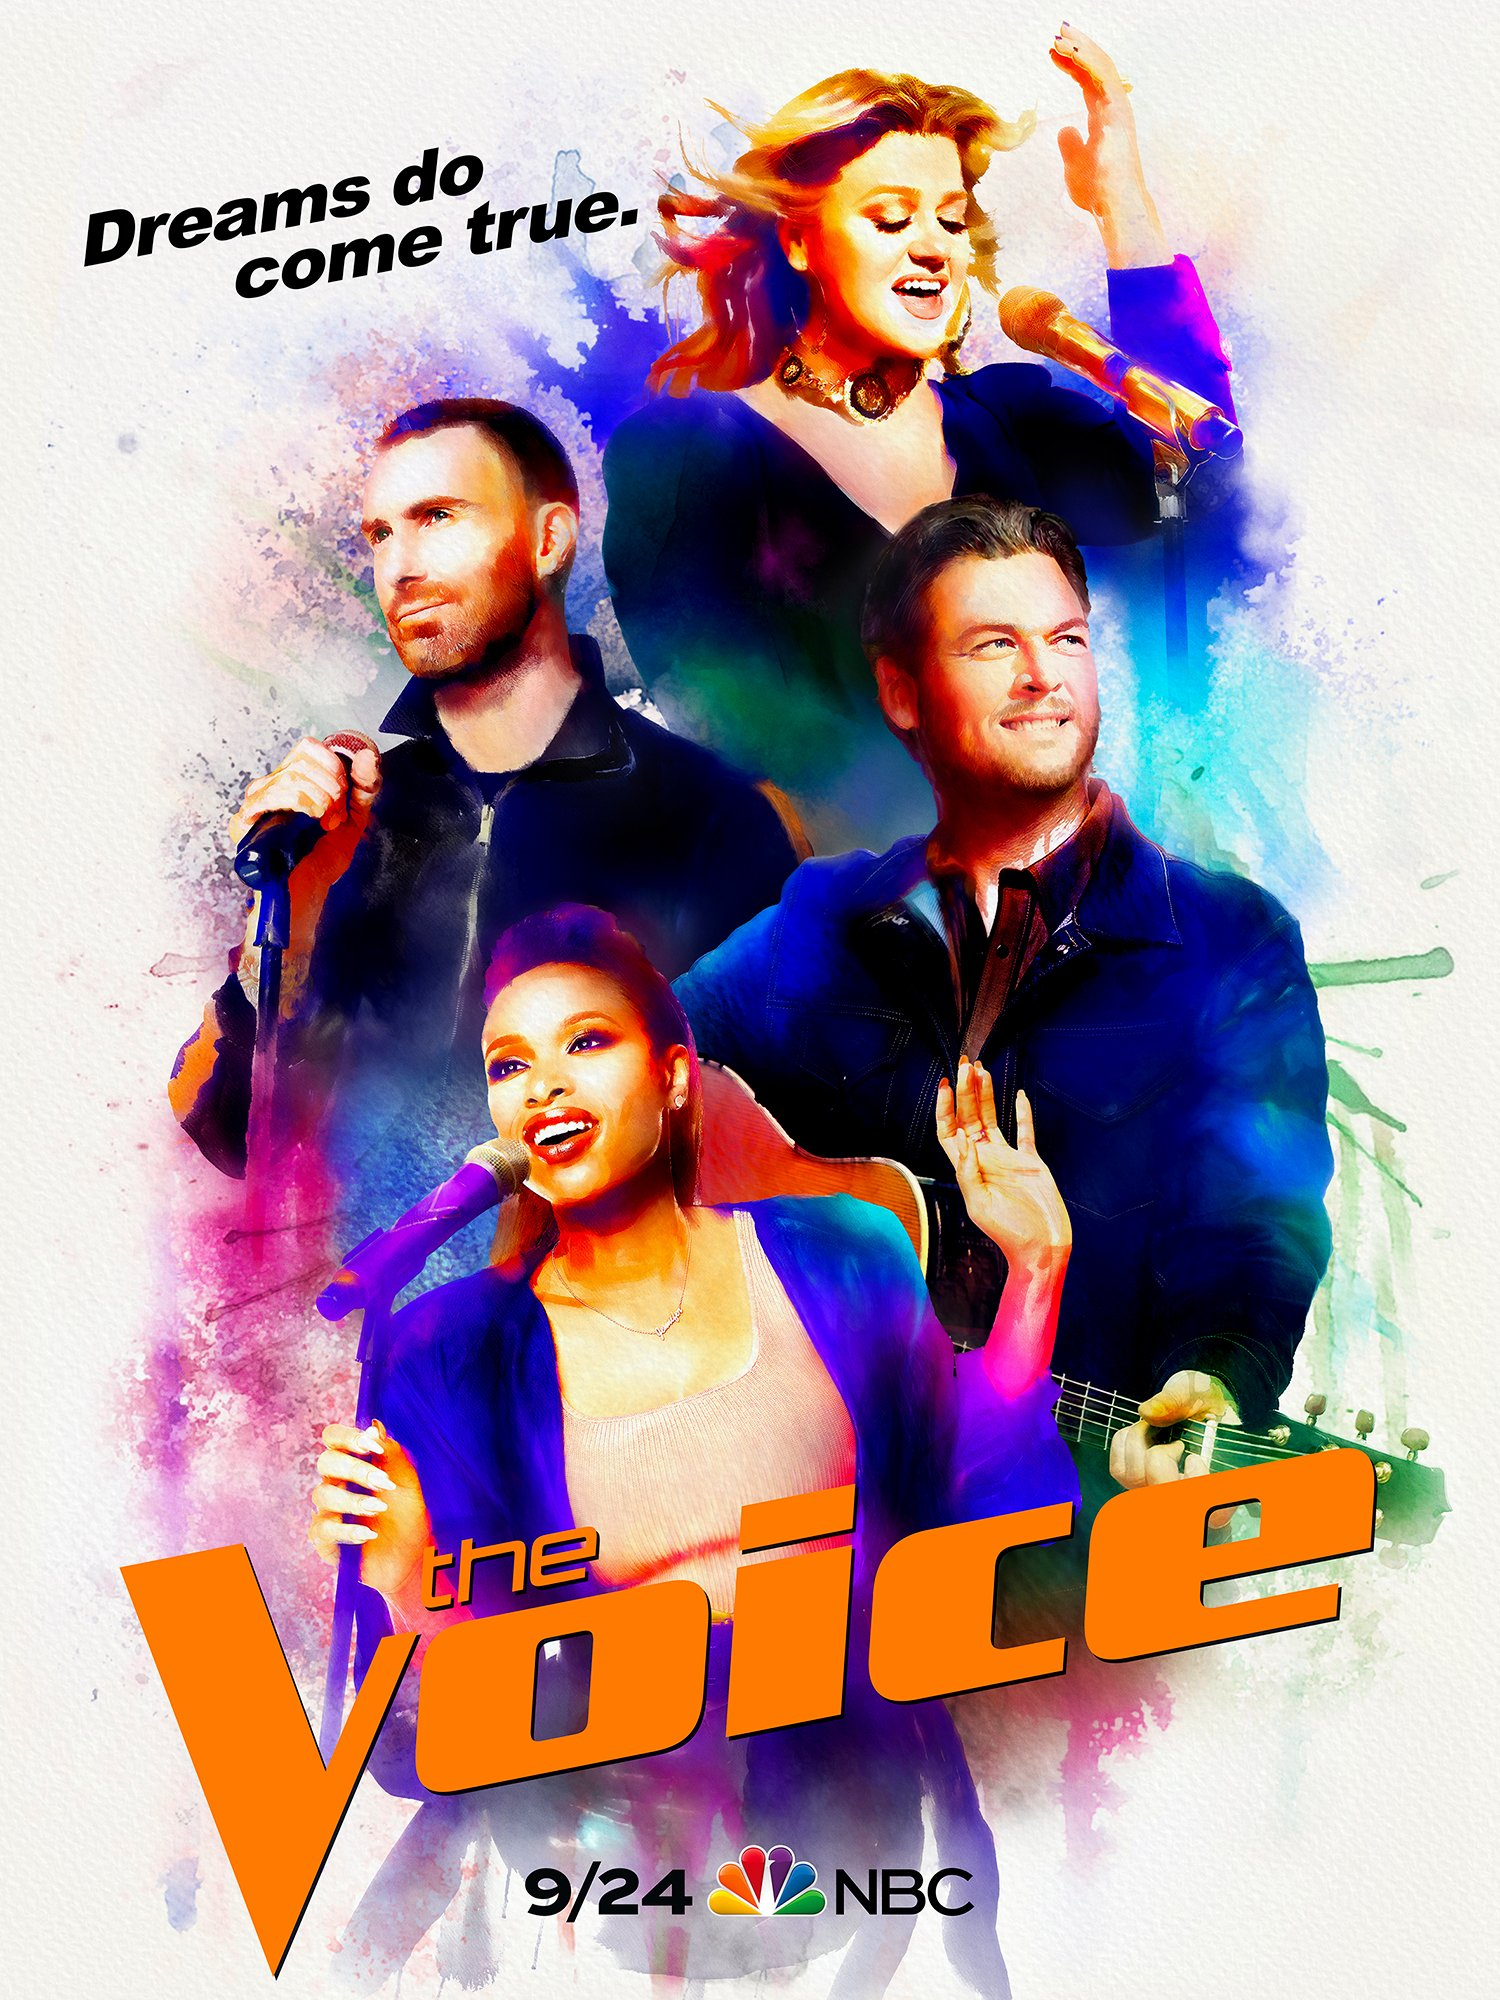 MONDAY your favorite team is back! @NBCTheVoice #TeamBlake!!– Team BS https://t.co/3jniU916f7